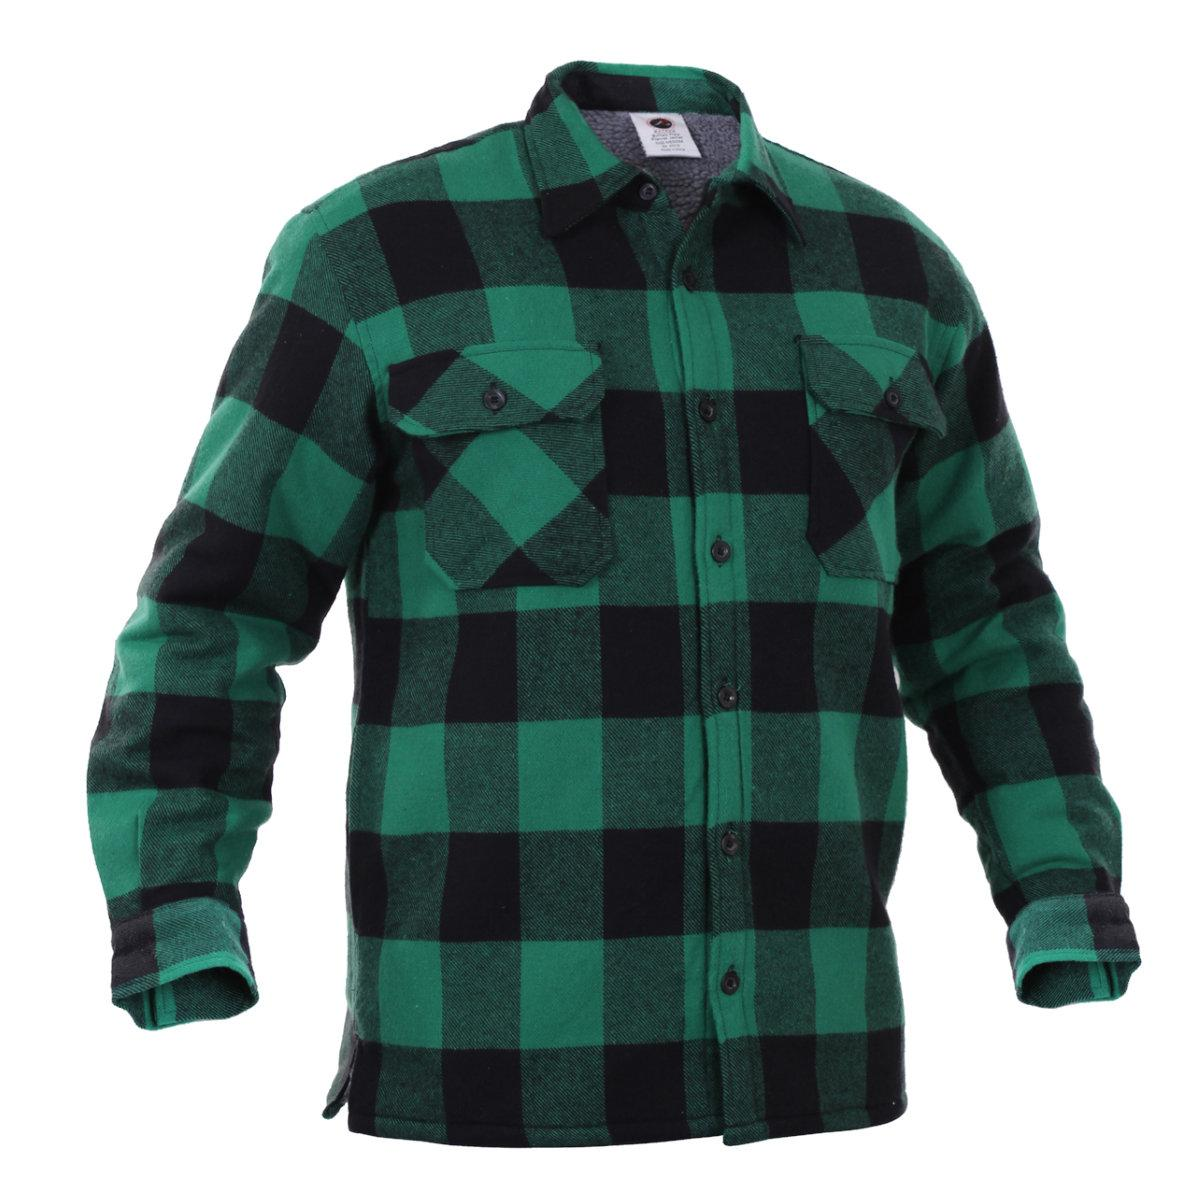 Extra Heavyweight Brawny Sherpa Lined Flannel Jacket In